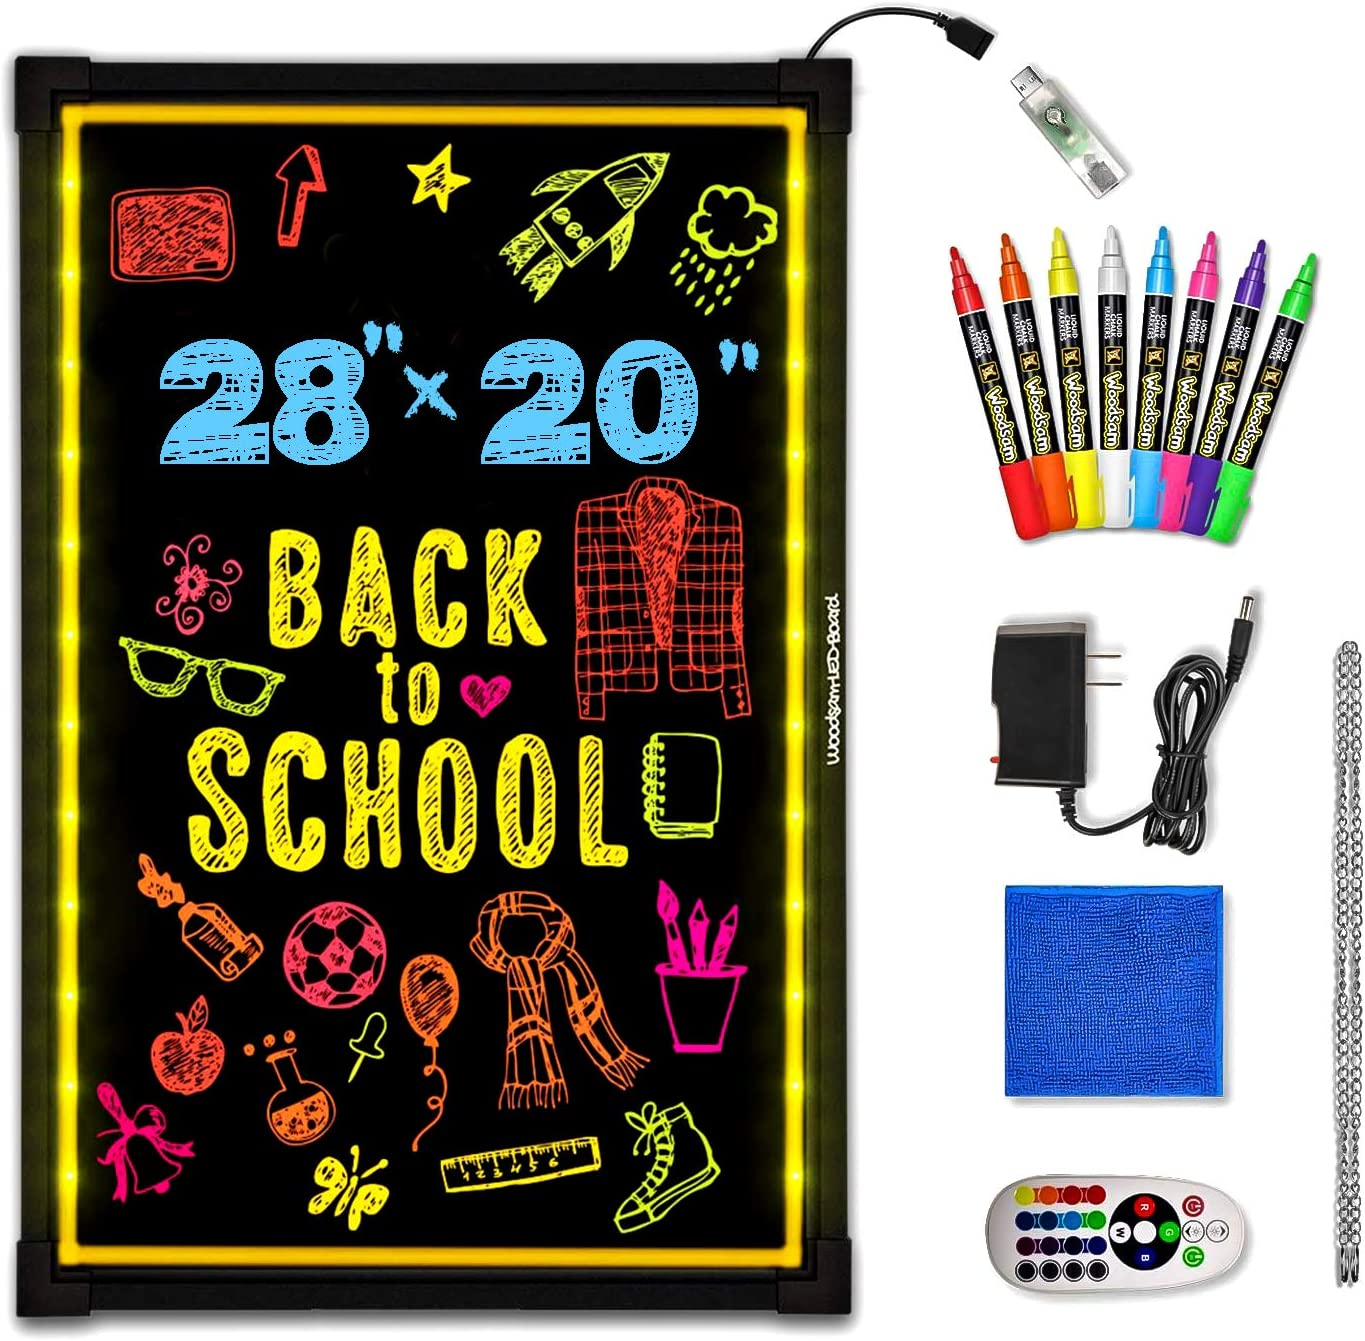 """Woodsam Lighted LED Writing Board - 28"""" X 20"""" Flashing Illuminated Erasable Neon Sign with 8 Colorful Markers - Perfect for Children, School, Home, Office, Business Holiday Celebration Gift"""